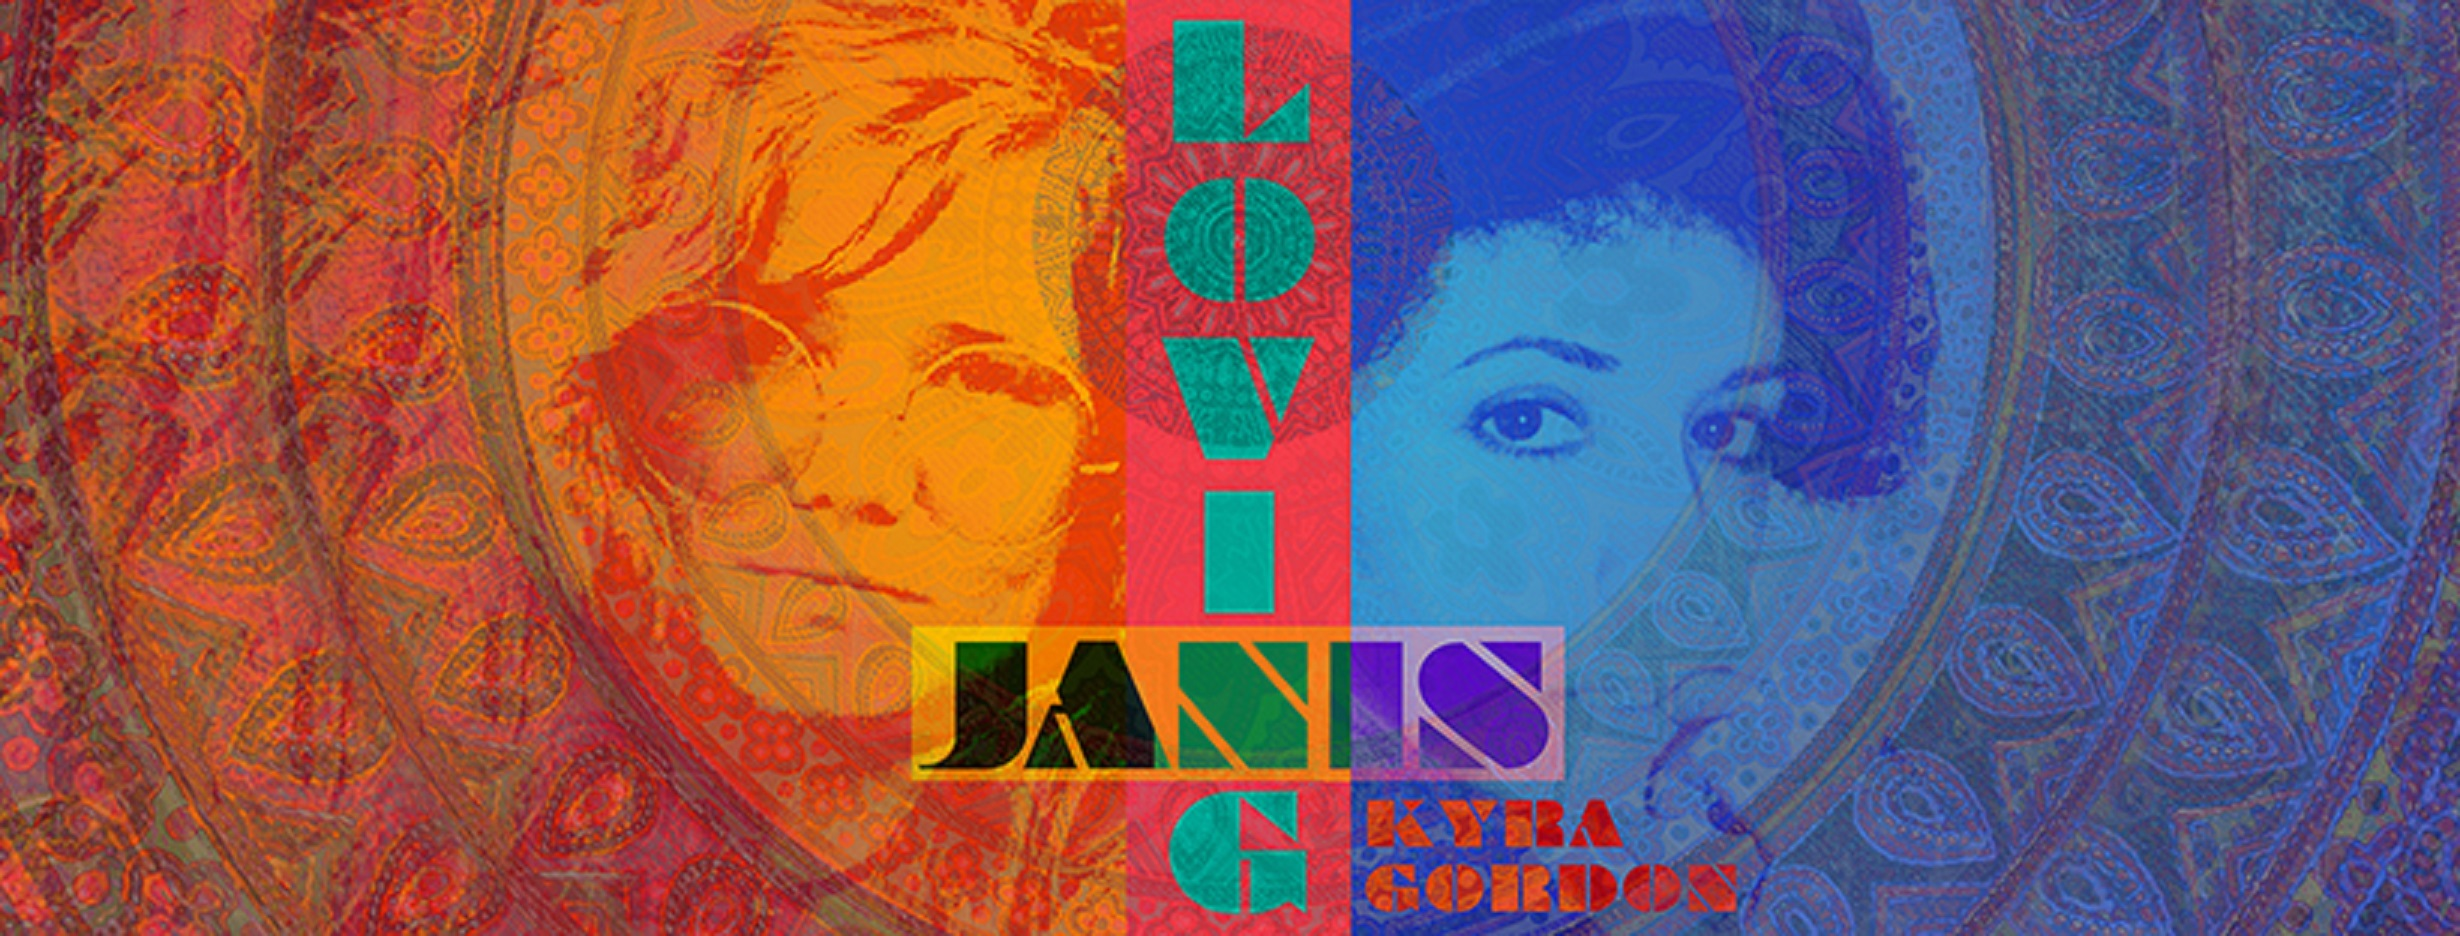 """Loving Janis"" Kyra Gordon's One Woman Musical Theatrical Tribute to Janis Joplin"